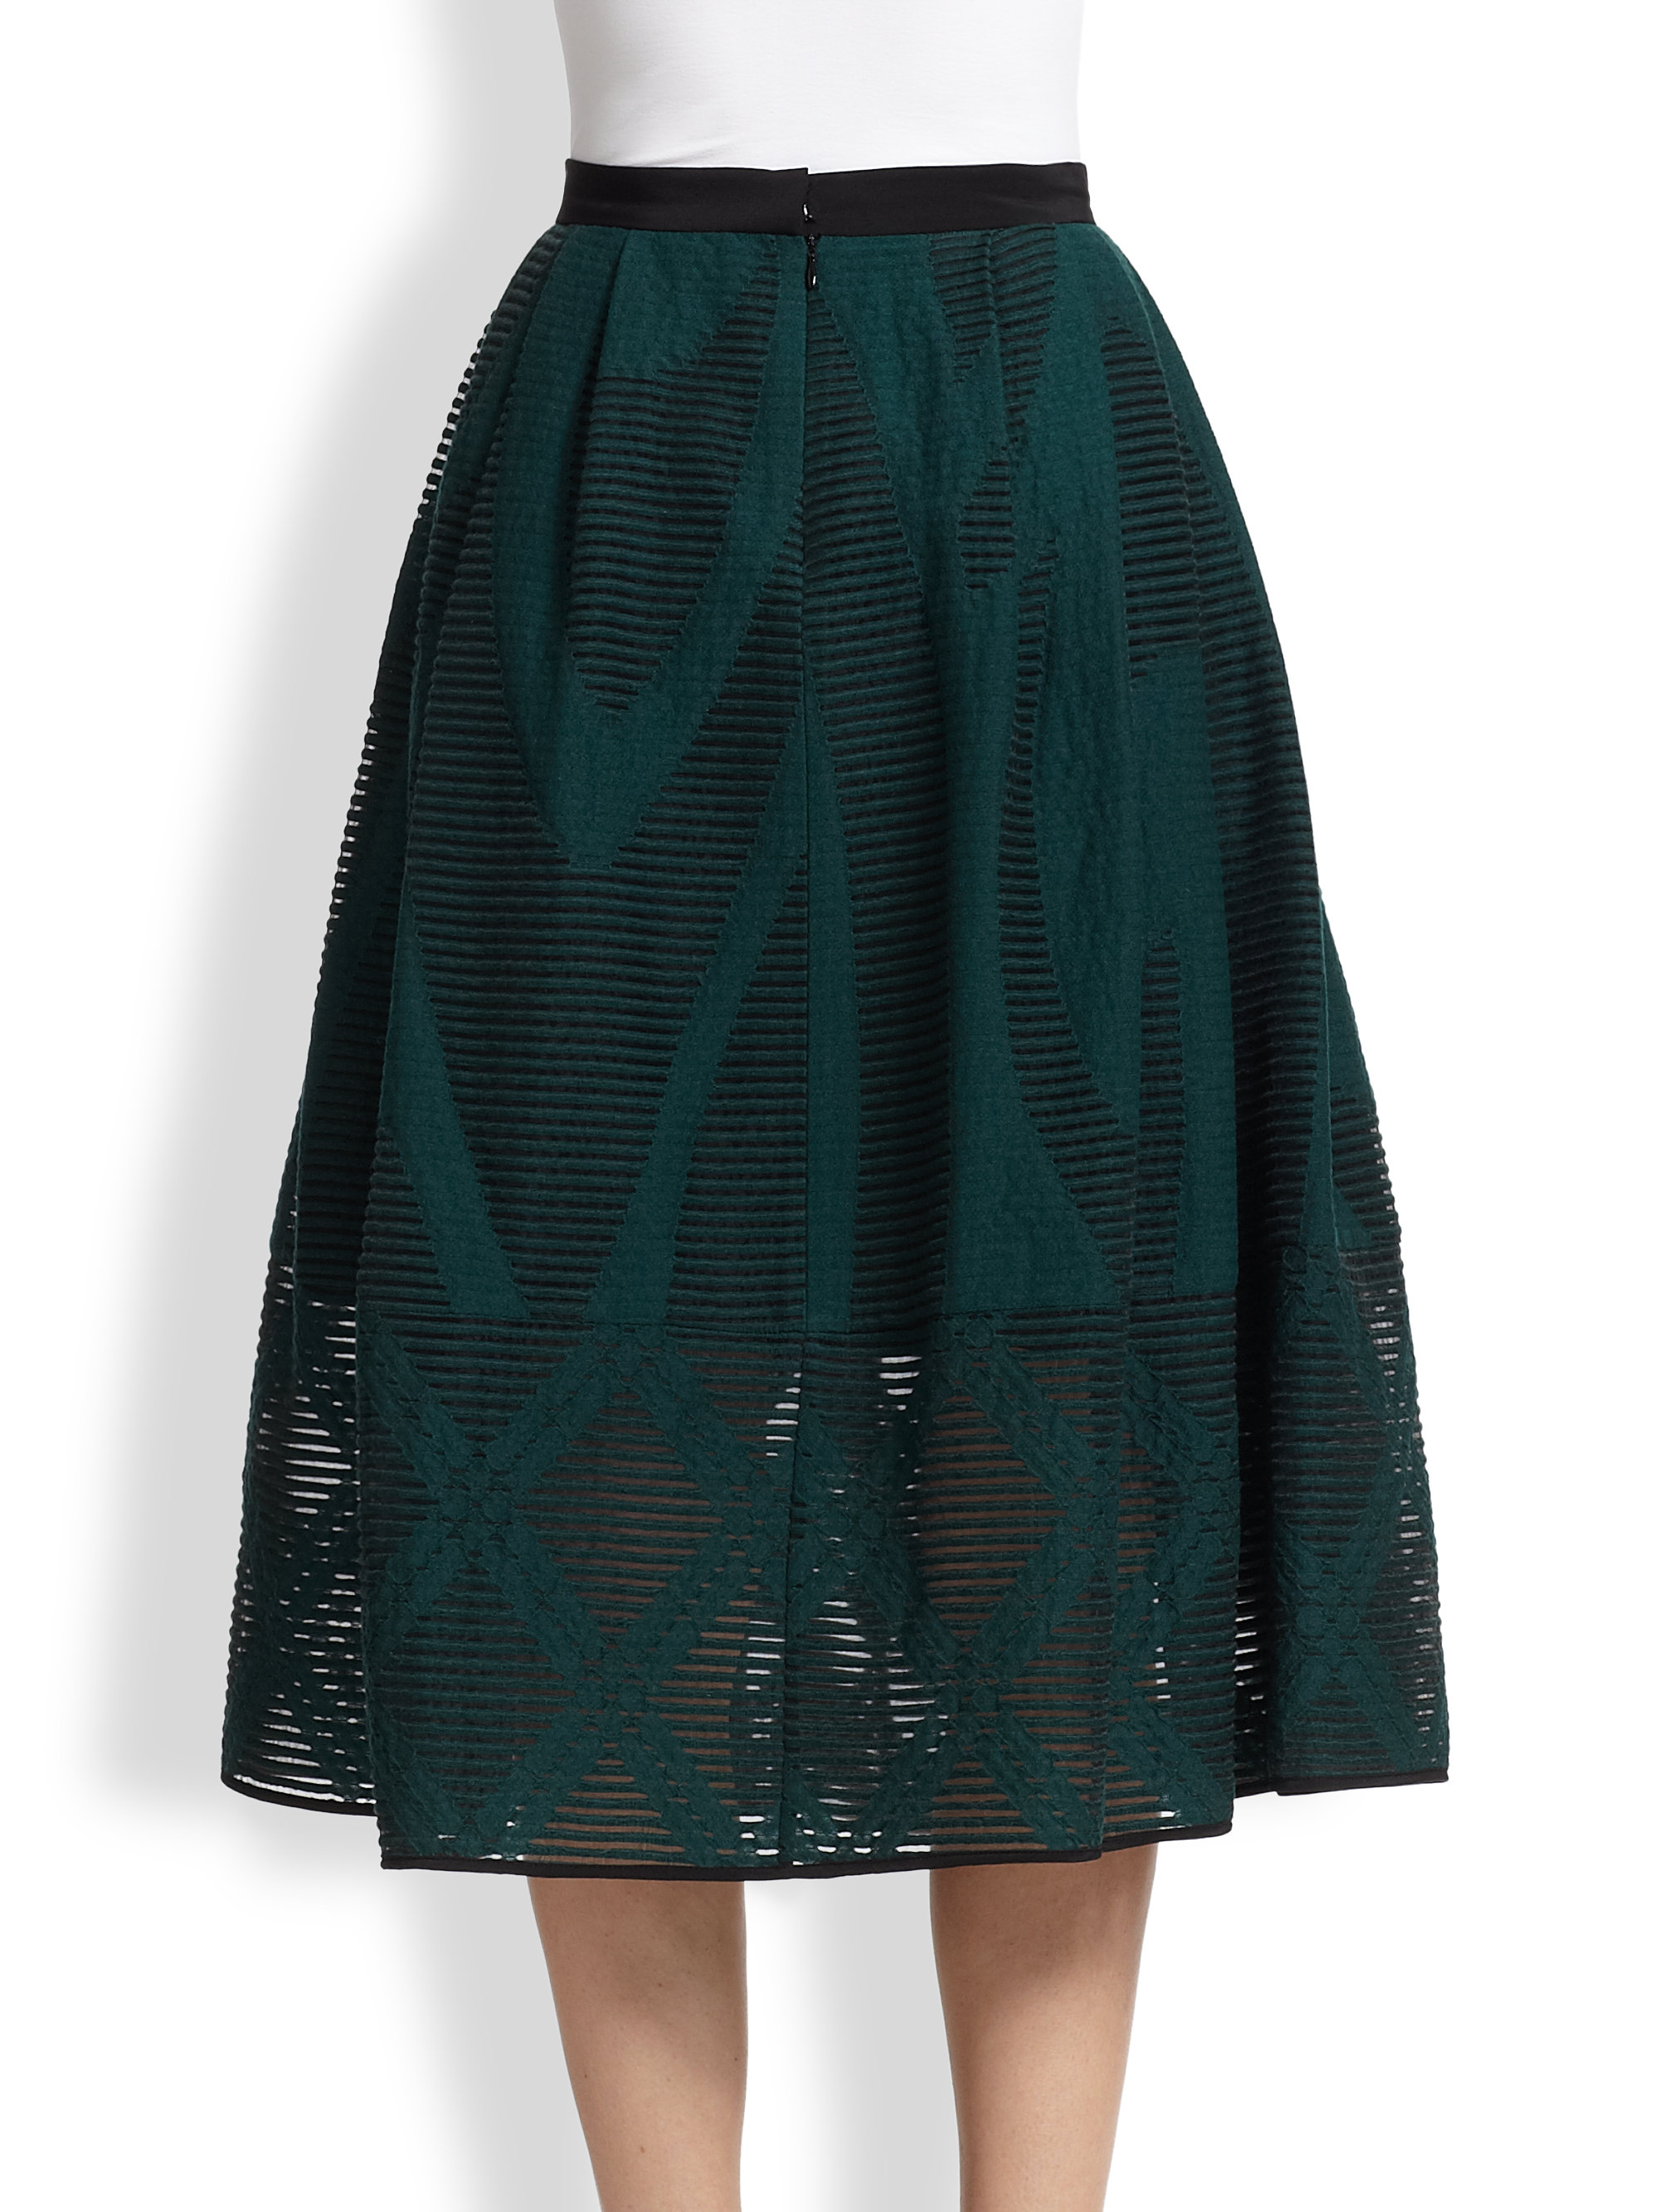 Tibi Abstract-Patterned Sheer Burnout Midi Skirt in Green | Lyst